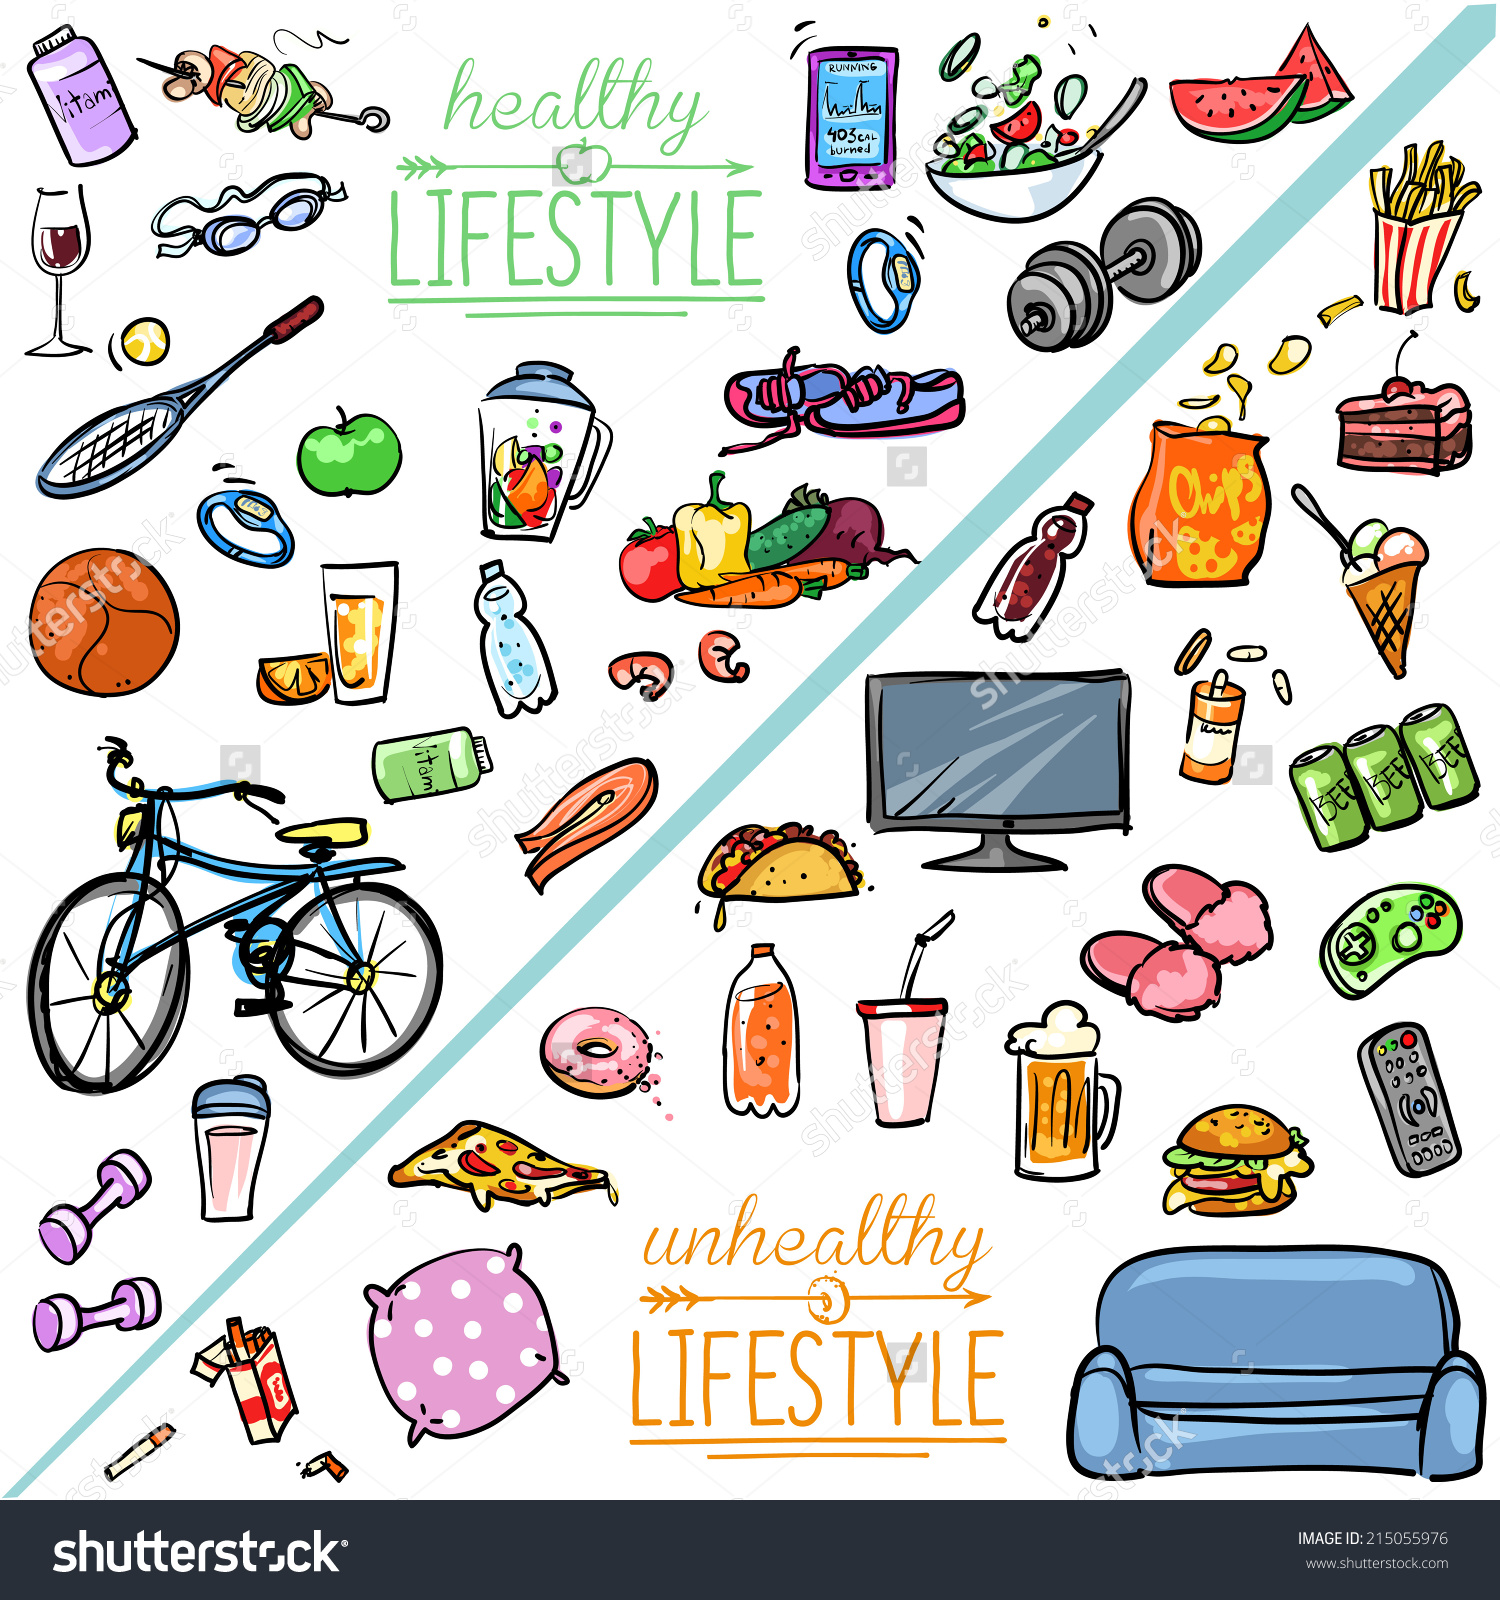 Healthy Lifestyle Vs Unhealthy Lifestyle Hand Stock Vector.